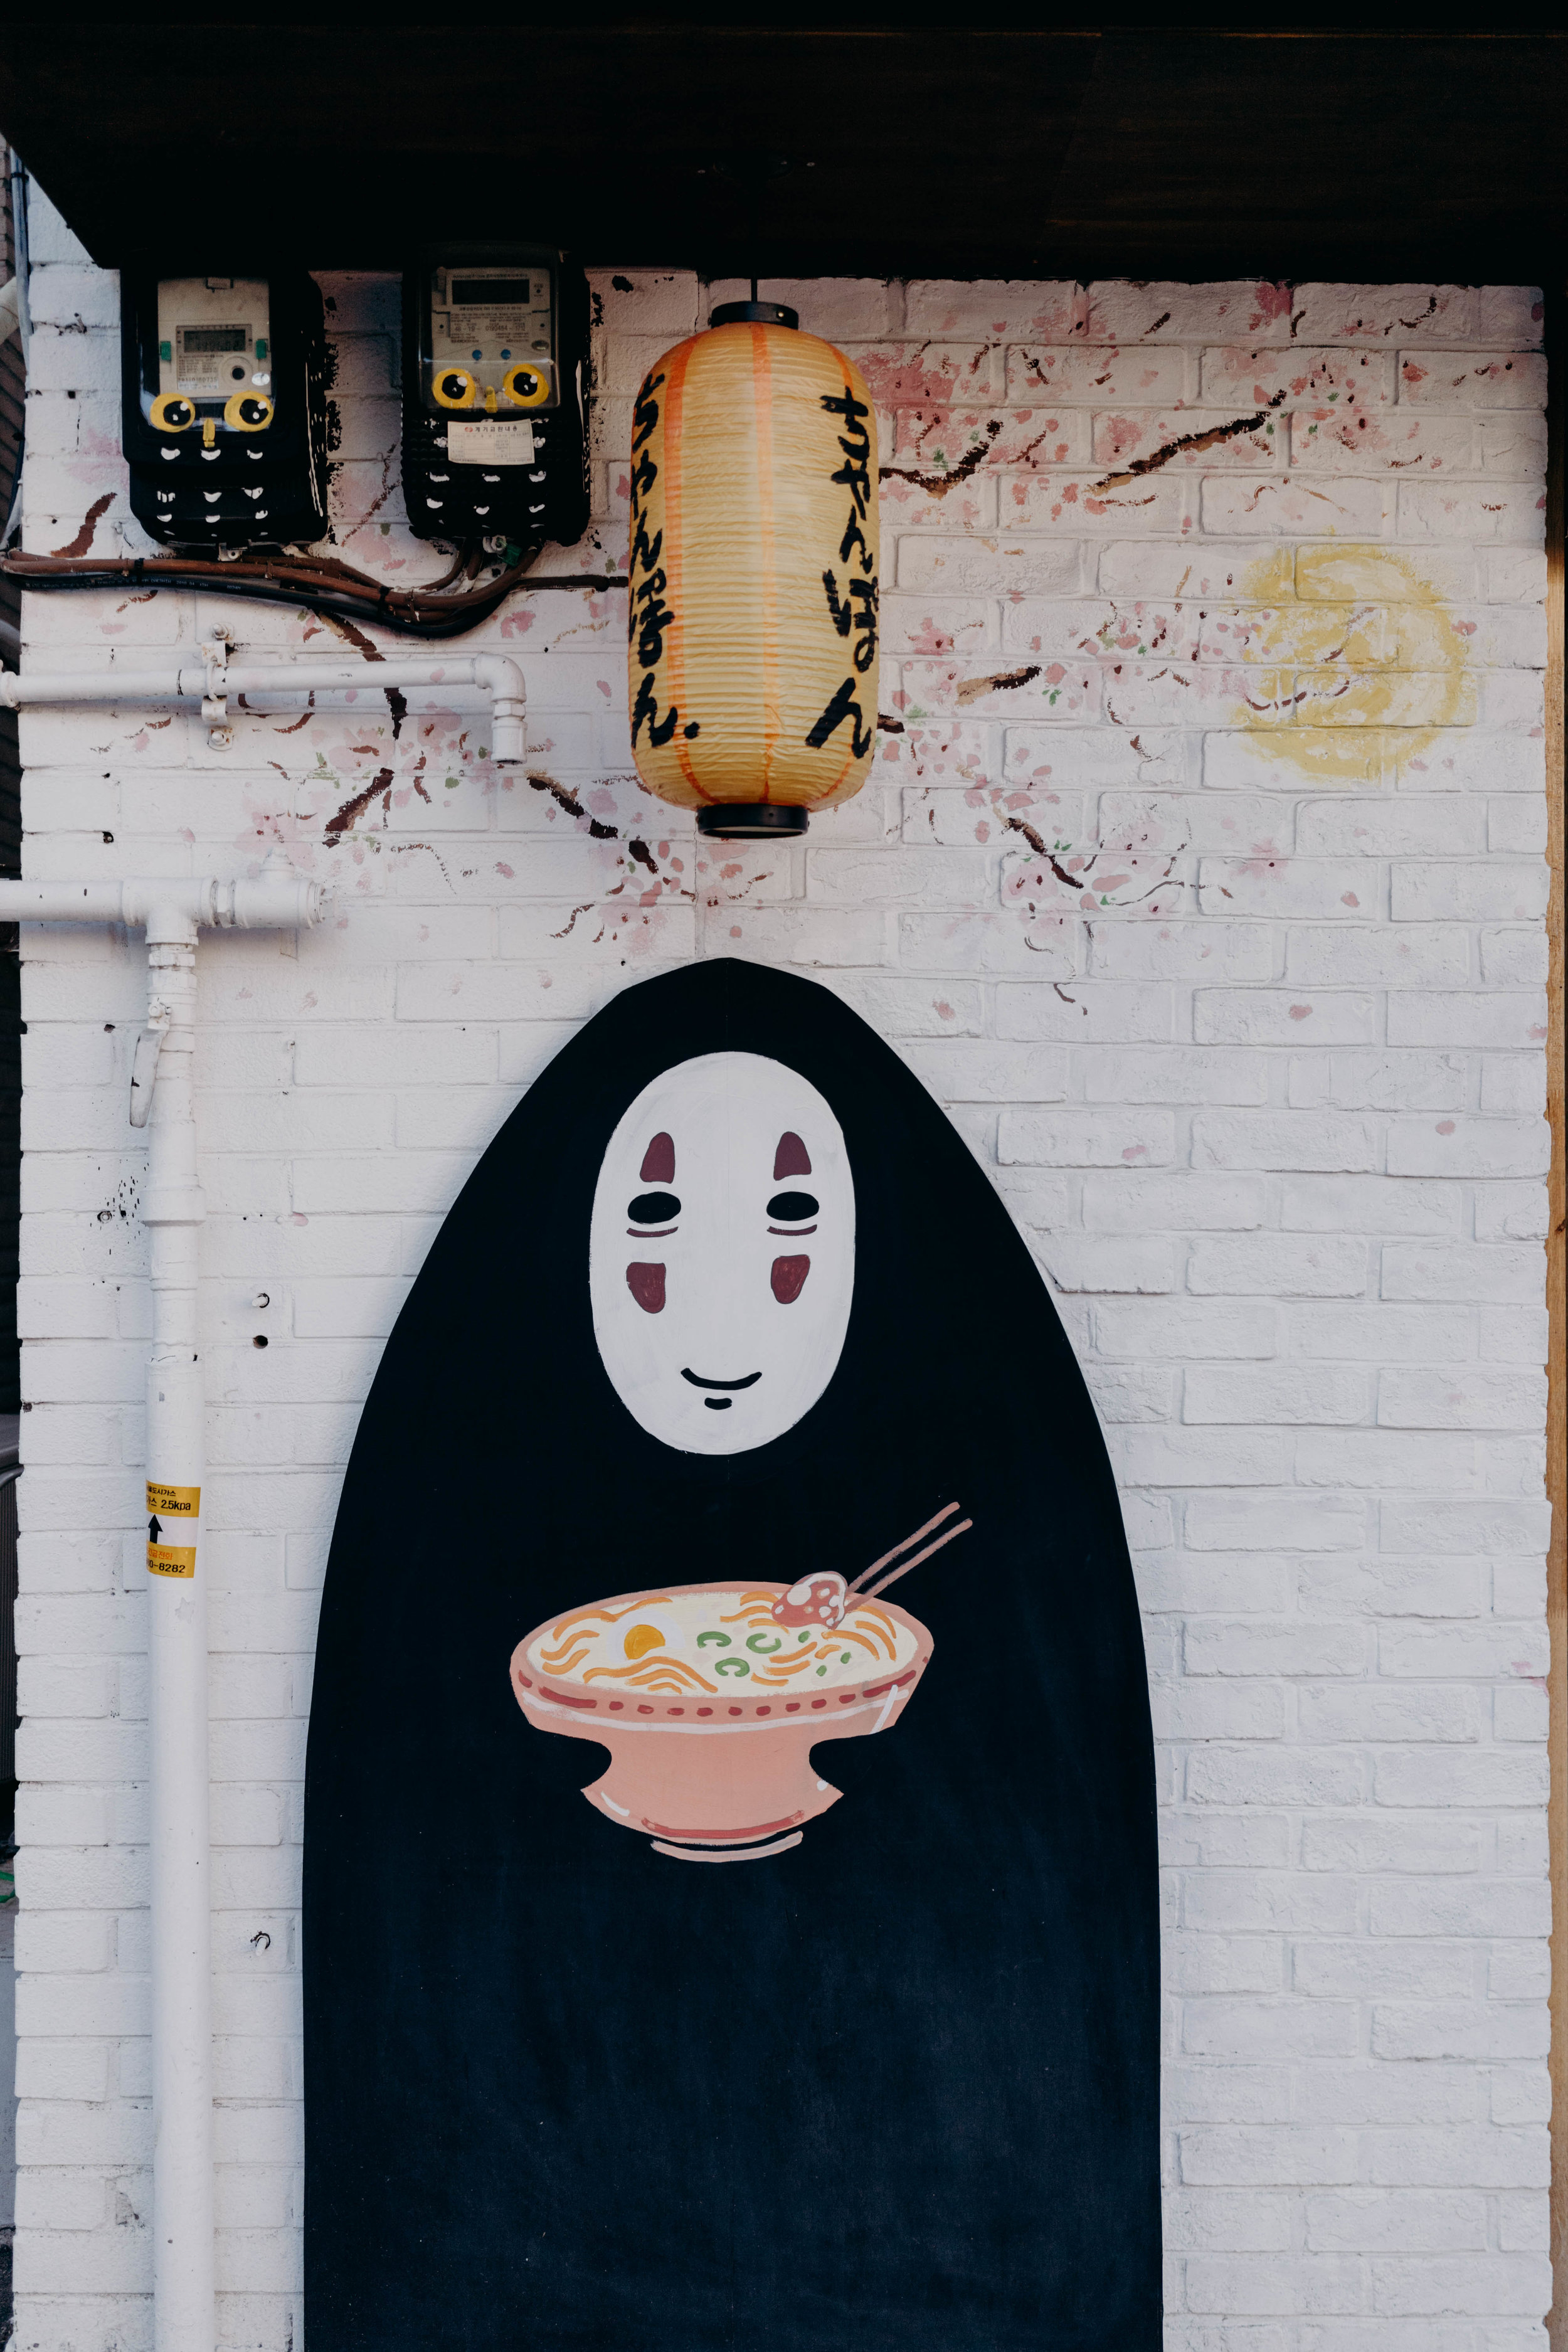 The Posts On Our Instagram that Blew Up Unexpectedly | On the Street Where We Live ( aretherelilactrees.com )  Yeonnam-dong, Seoul, South Korea, No Face, Kaonashi, Spirited Away, ramen